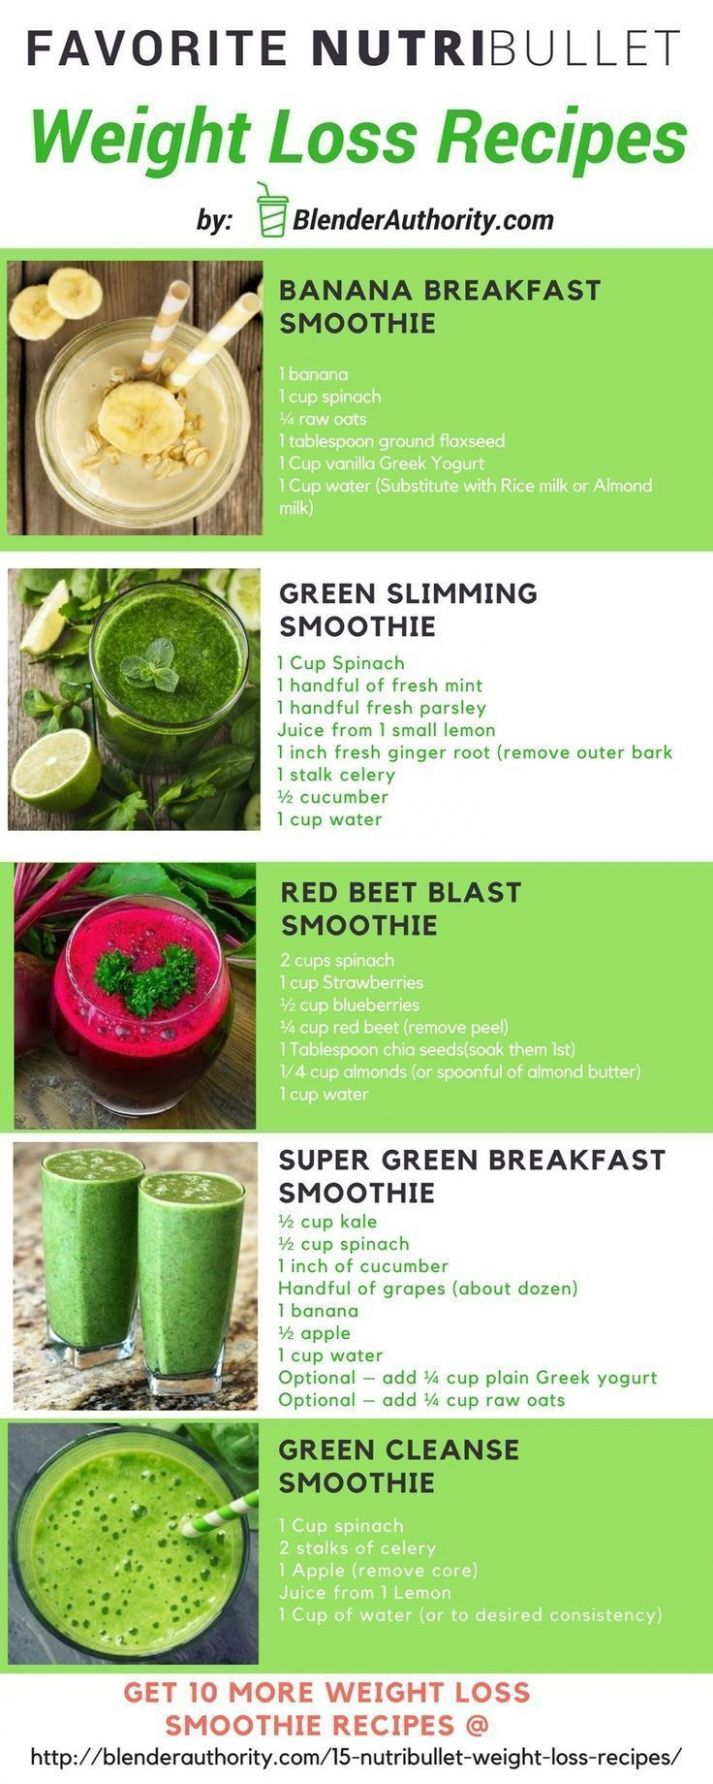 Pin auf Rezepte für Shakes - Recipes For Weight Loss Smoothies